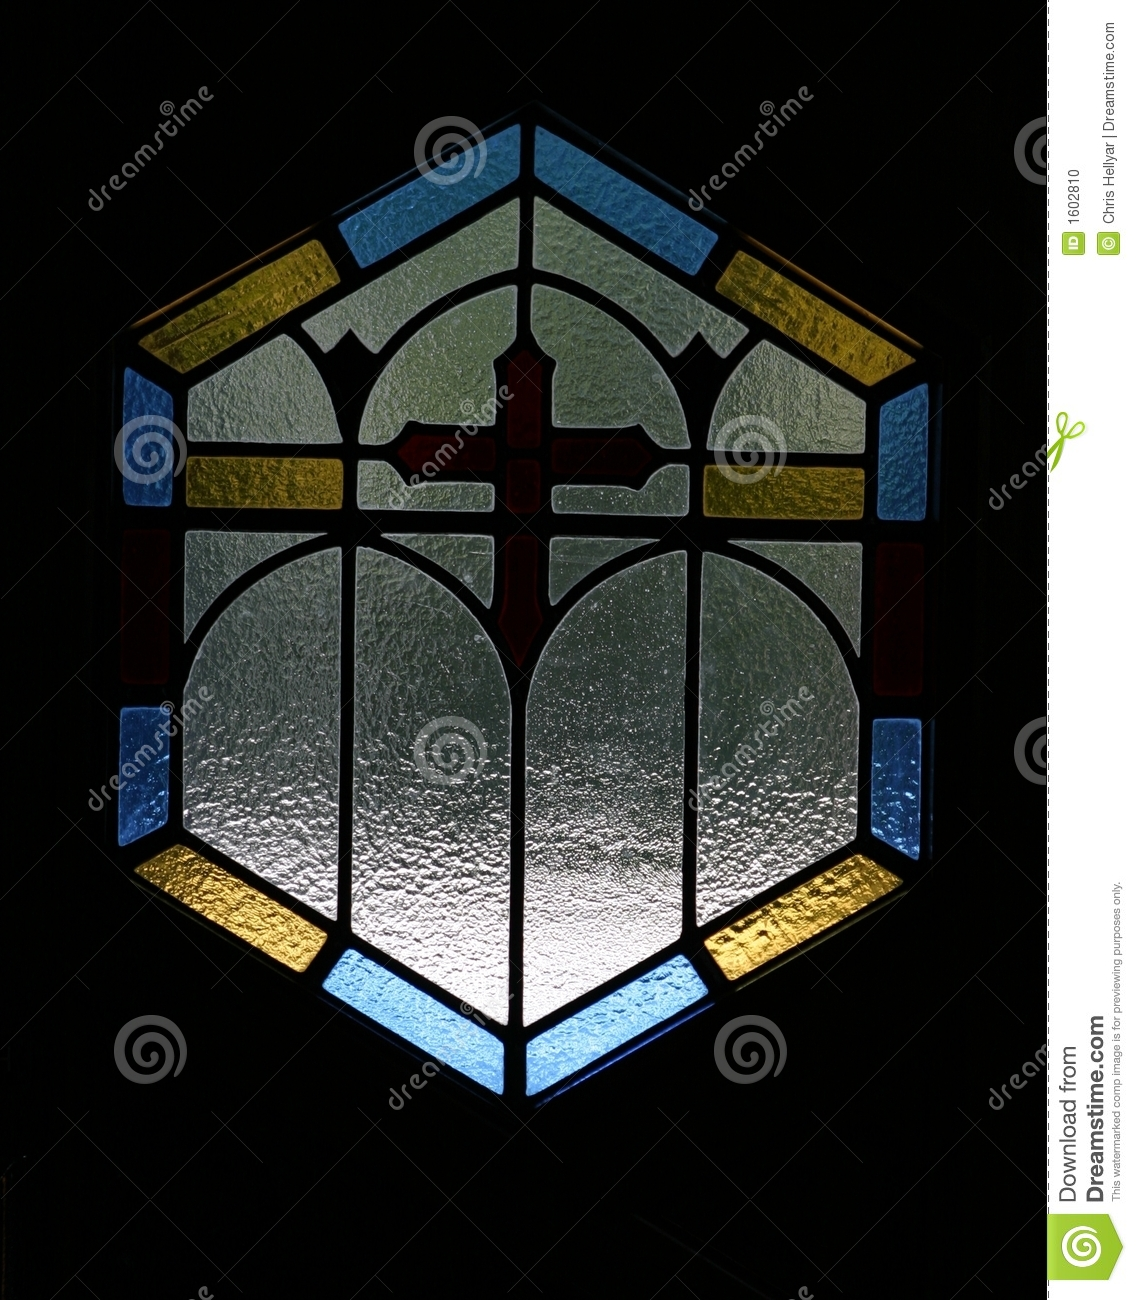 Simple Stained Glass Window Stock Photo - Image: 1602810